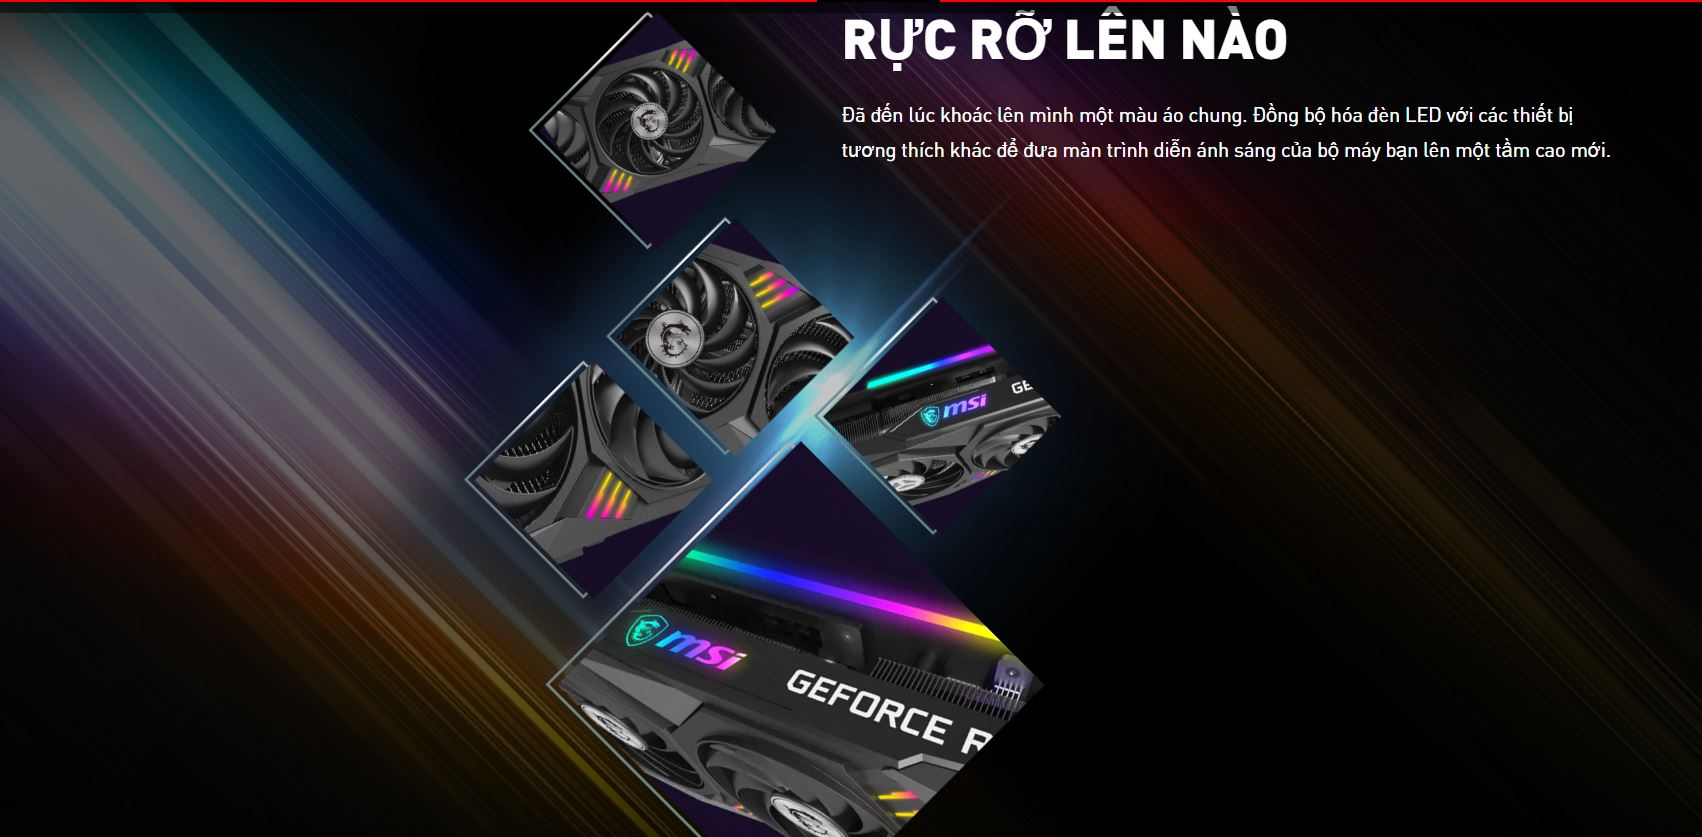 Card màn hình MSI RTX 3090 GAMING X TRIO 24G (24GB GDDR6X, 384-bit, HDMI +DP, 3x8-pin)